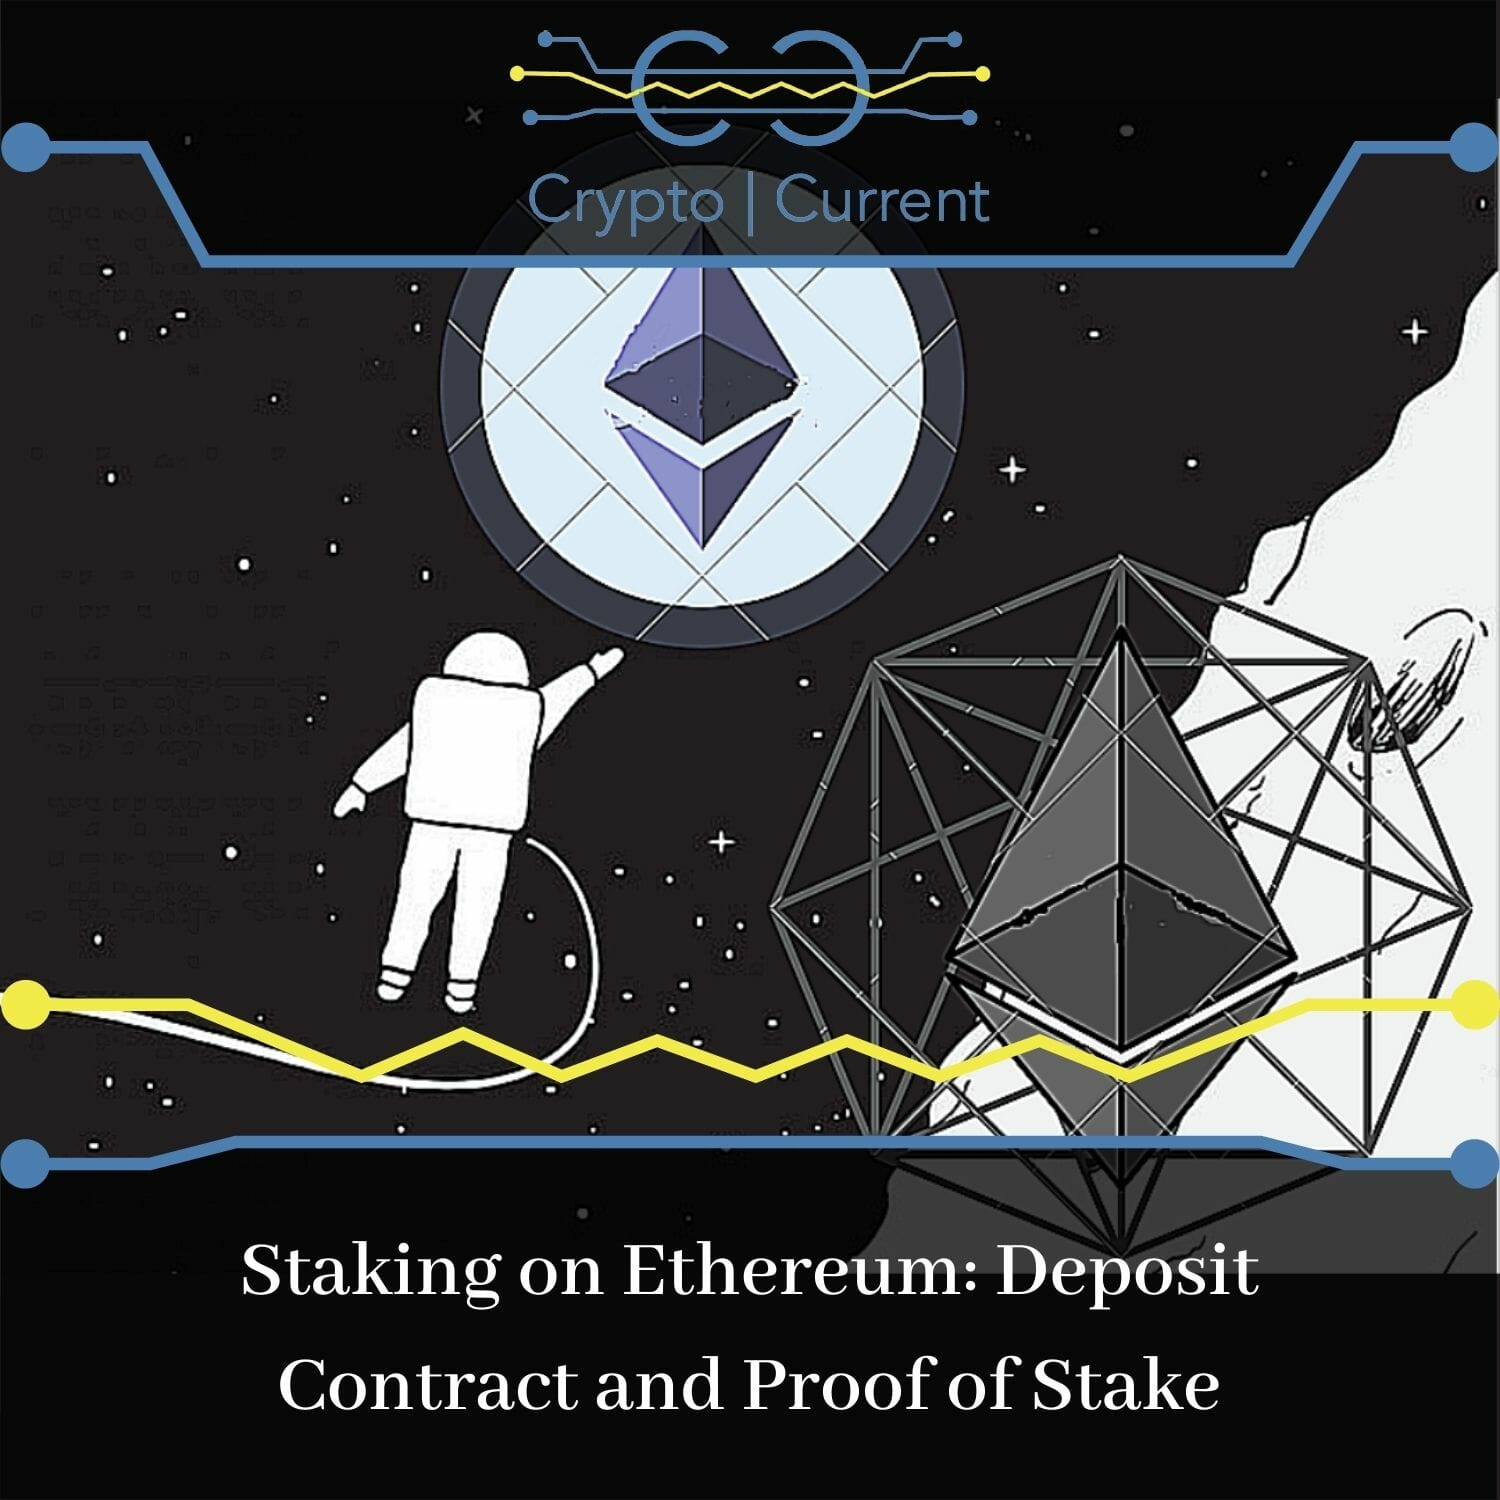 Staking on Ethereum: Deposit Contract and Proof of Stake